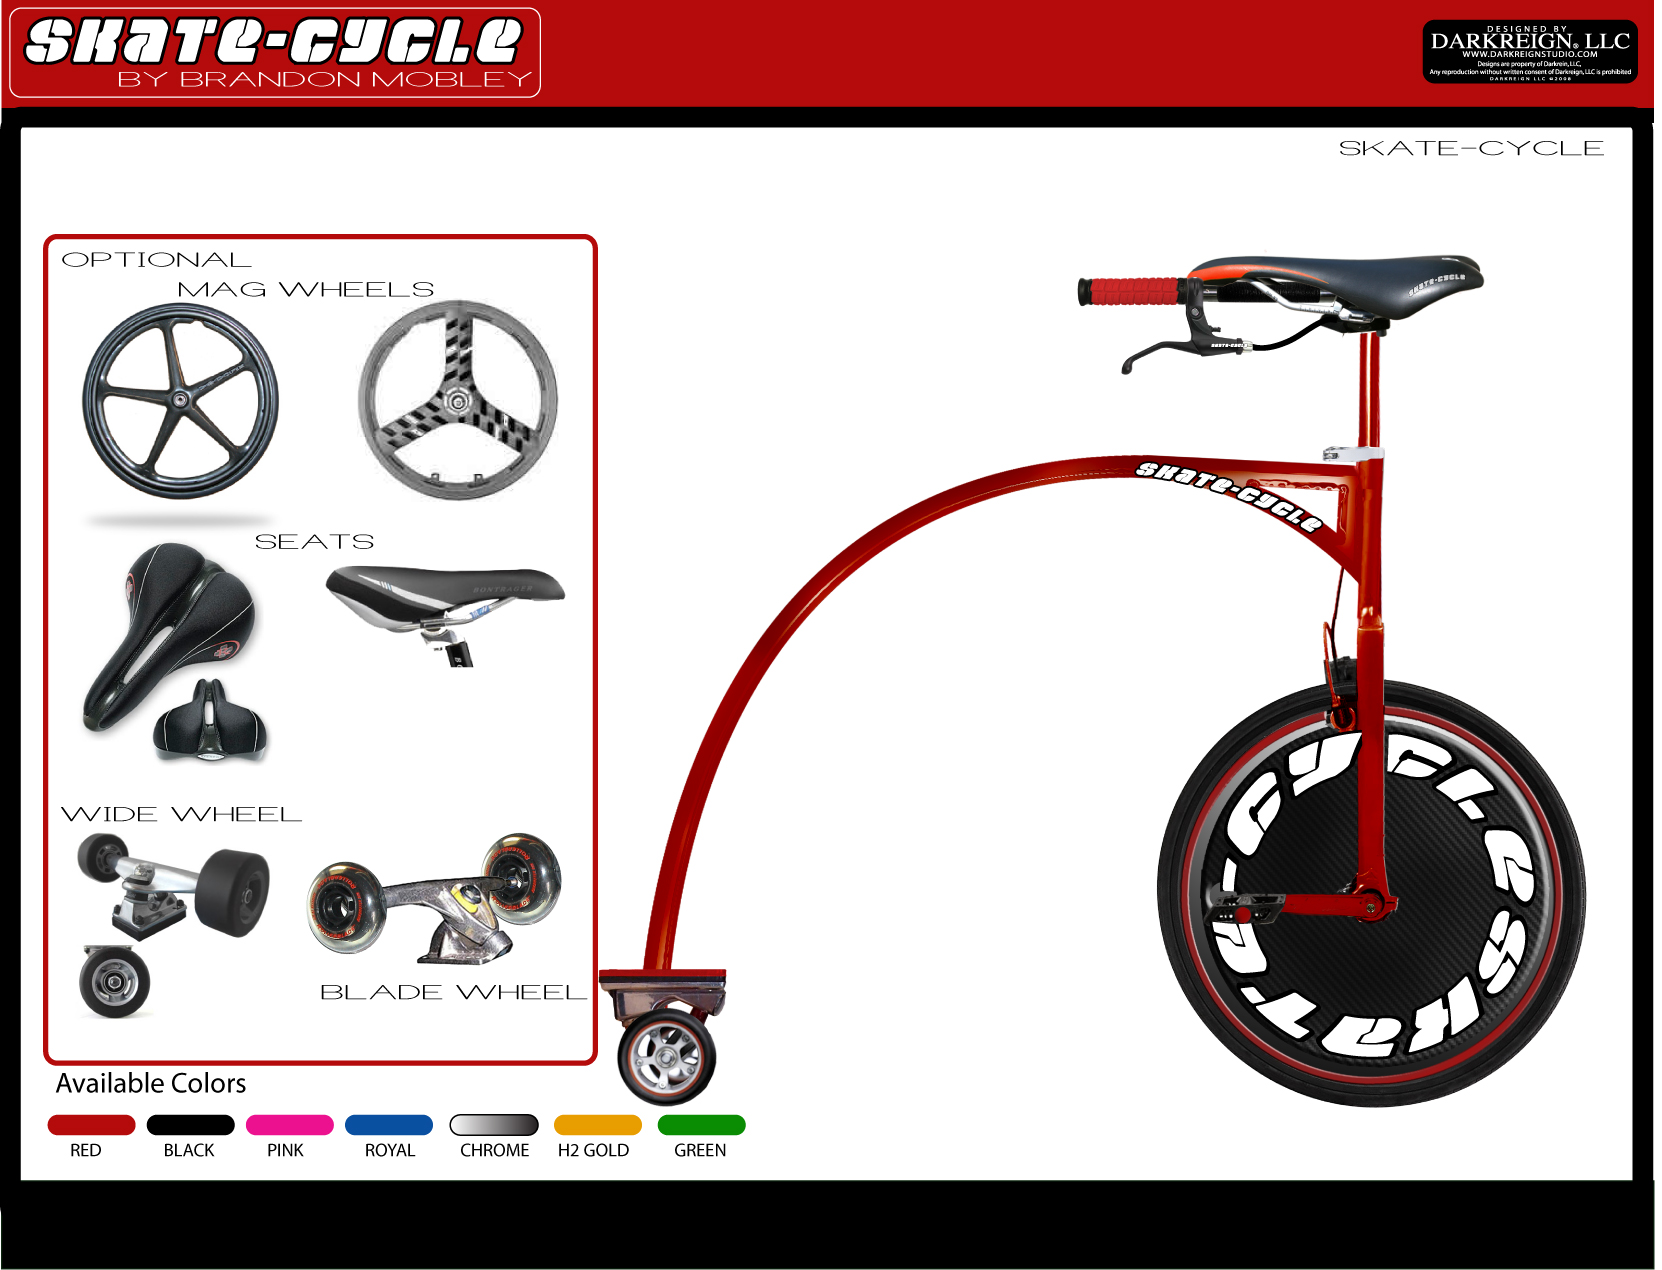 1SKATE-CYCLE IMAGE.jpg